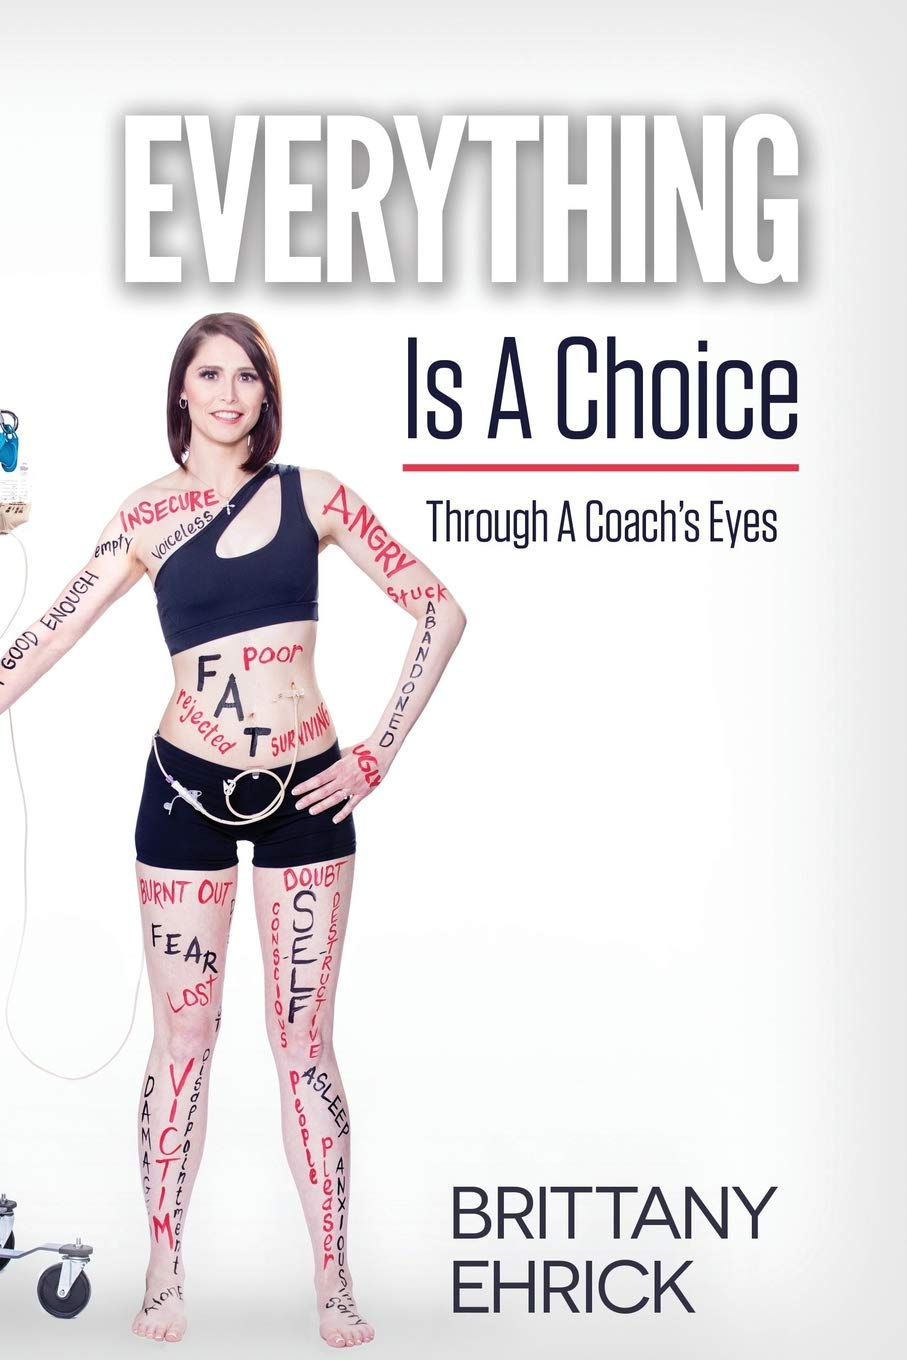 Image OfEverything Is A Choice: Through A Coach's Eyes